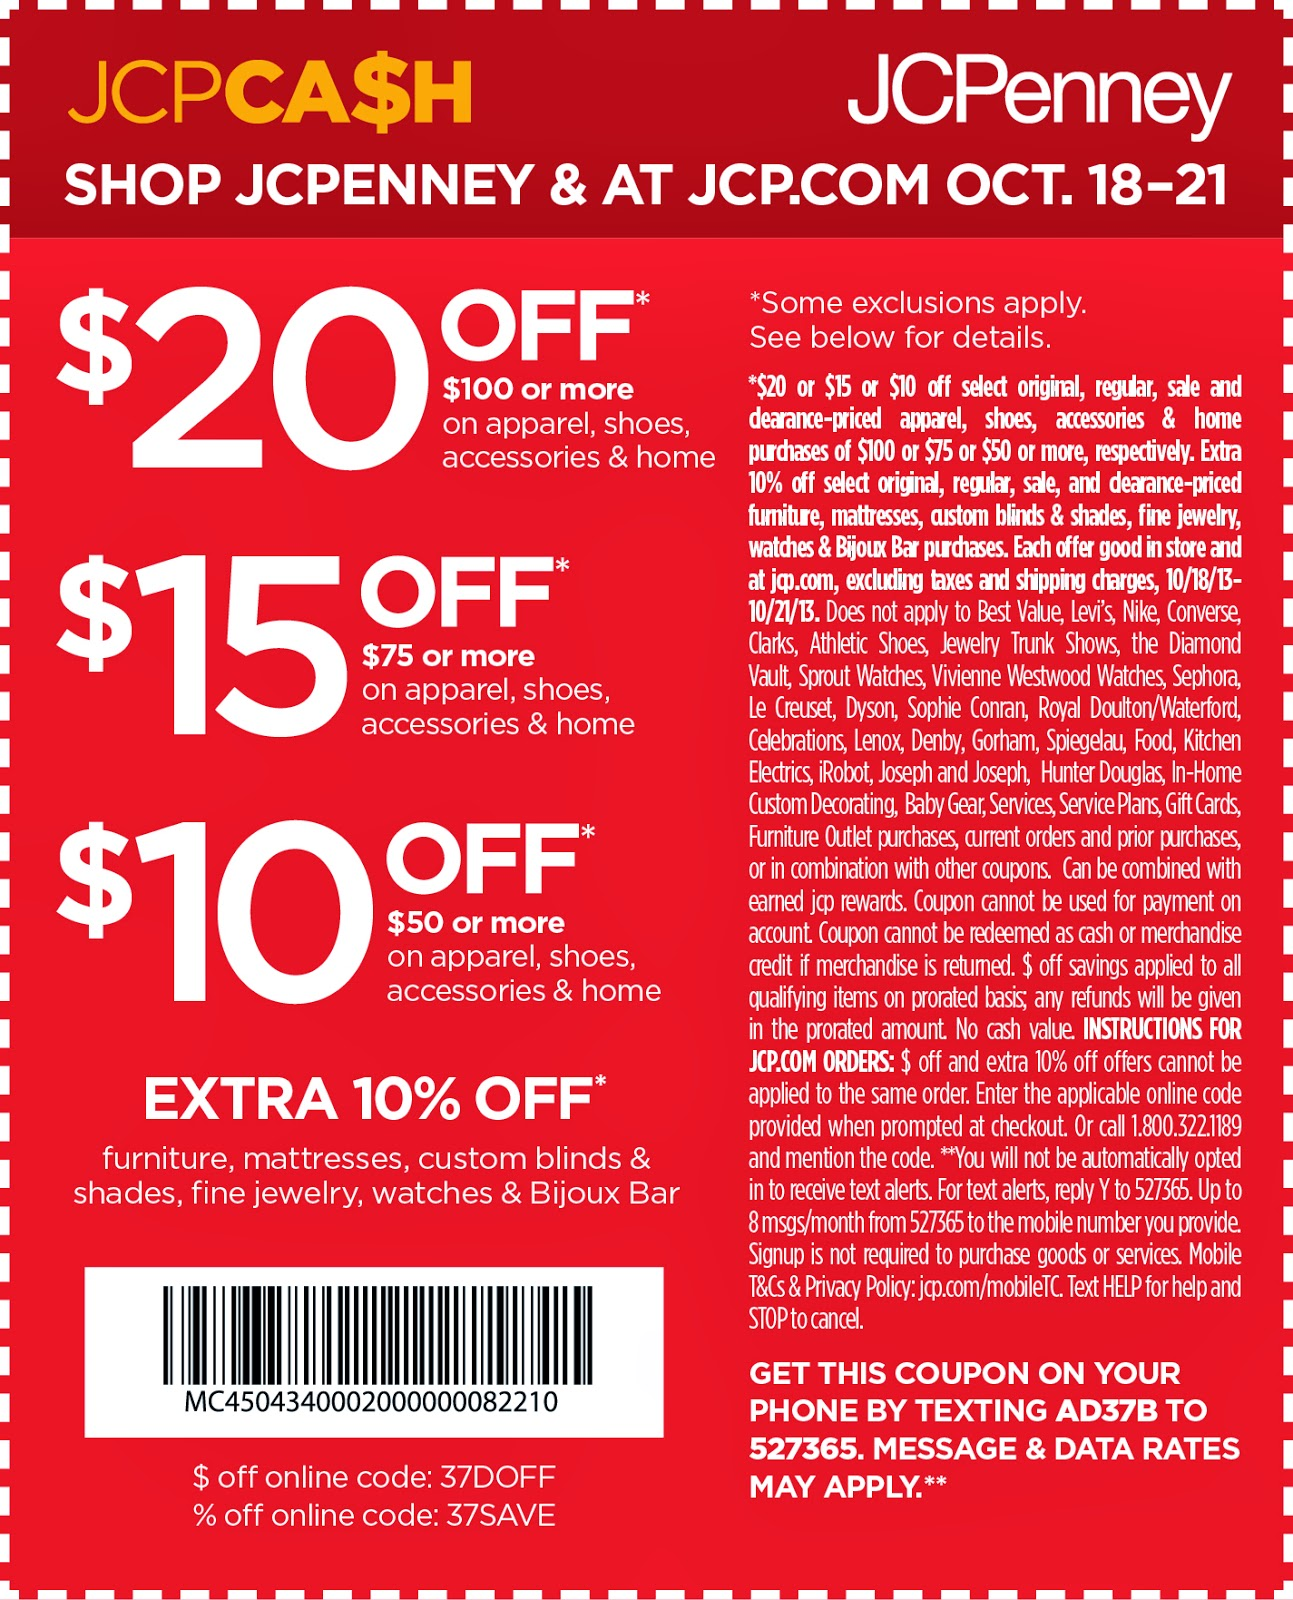 Jcpenney Store Printable Coupon 2014